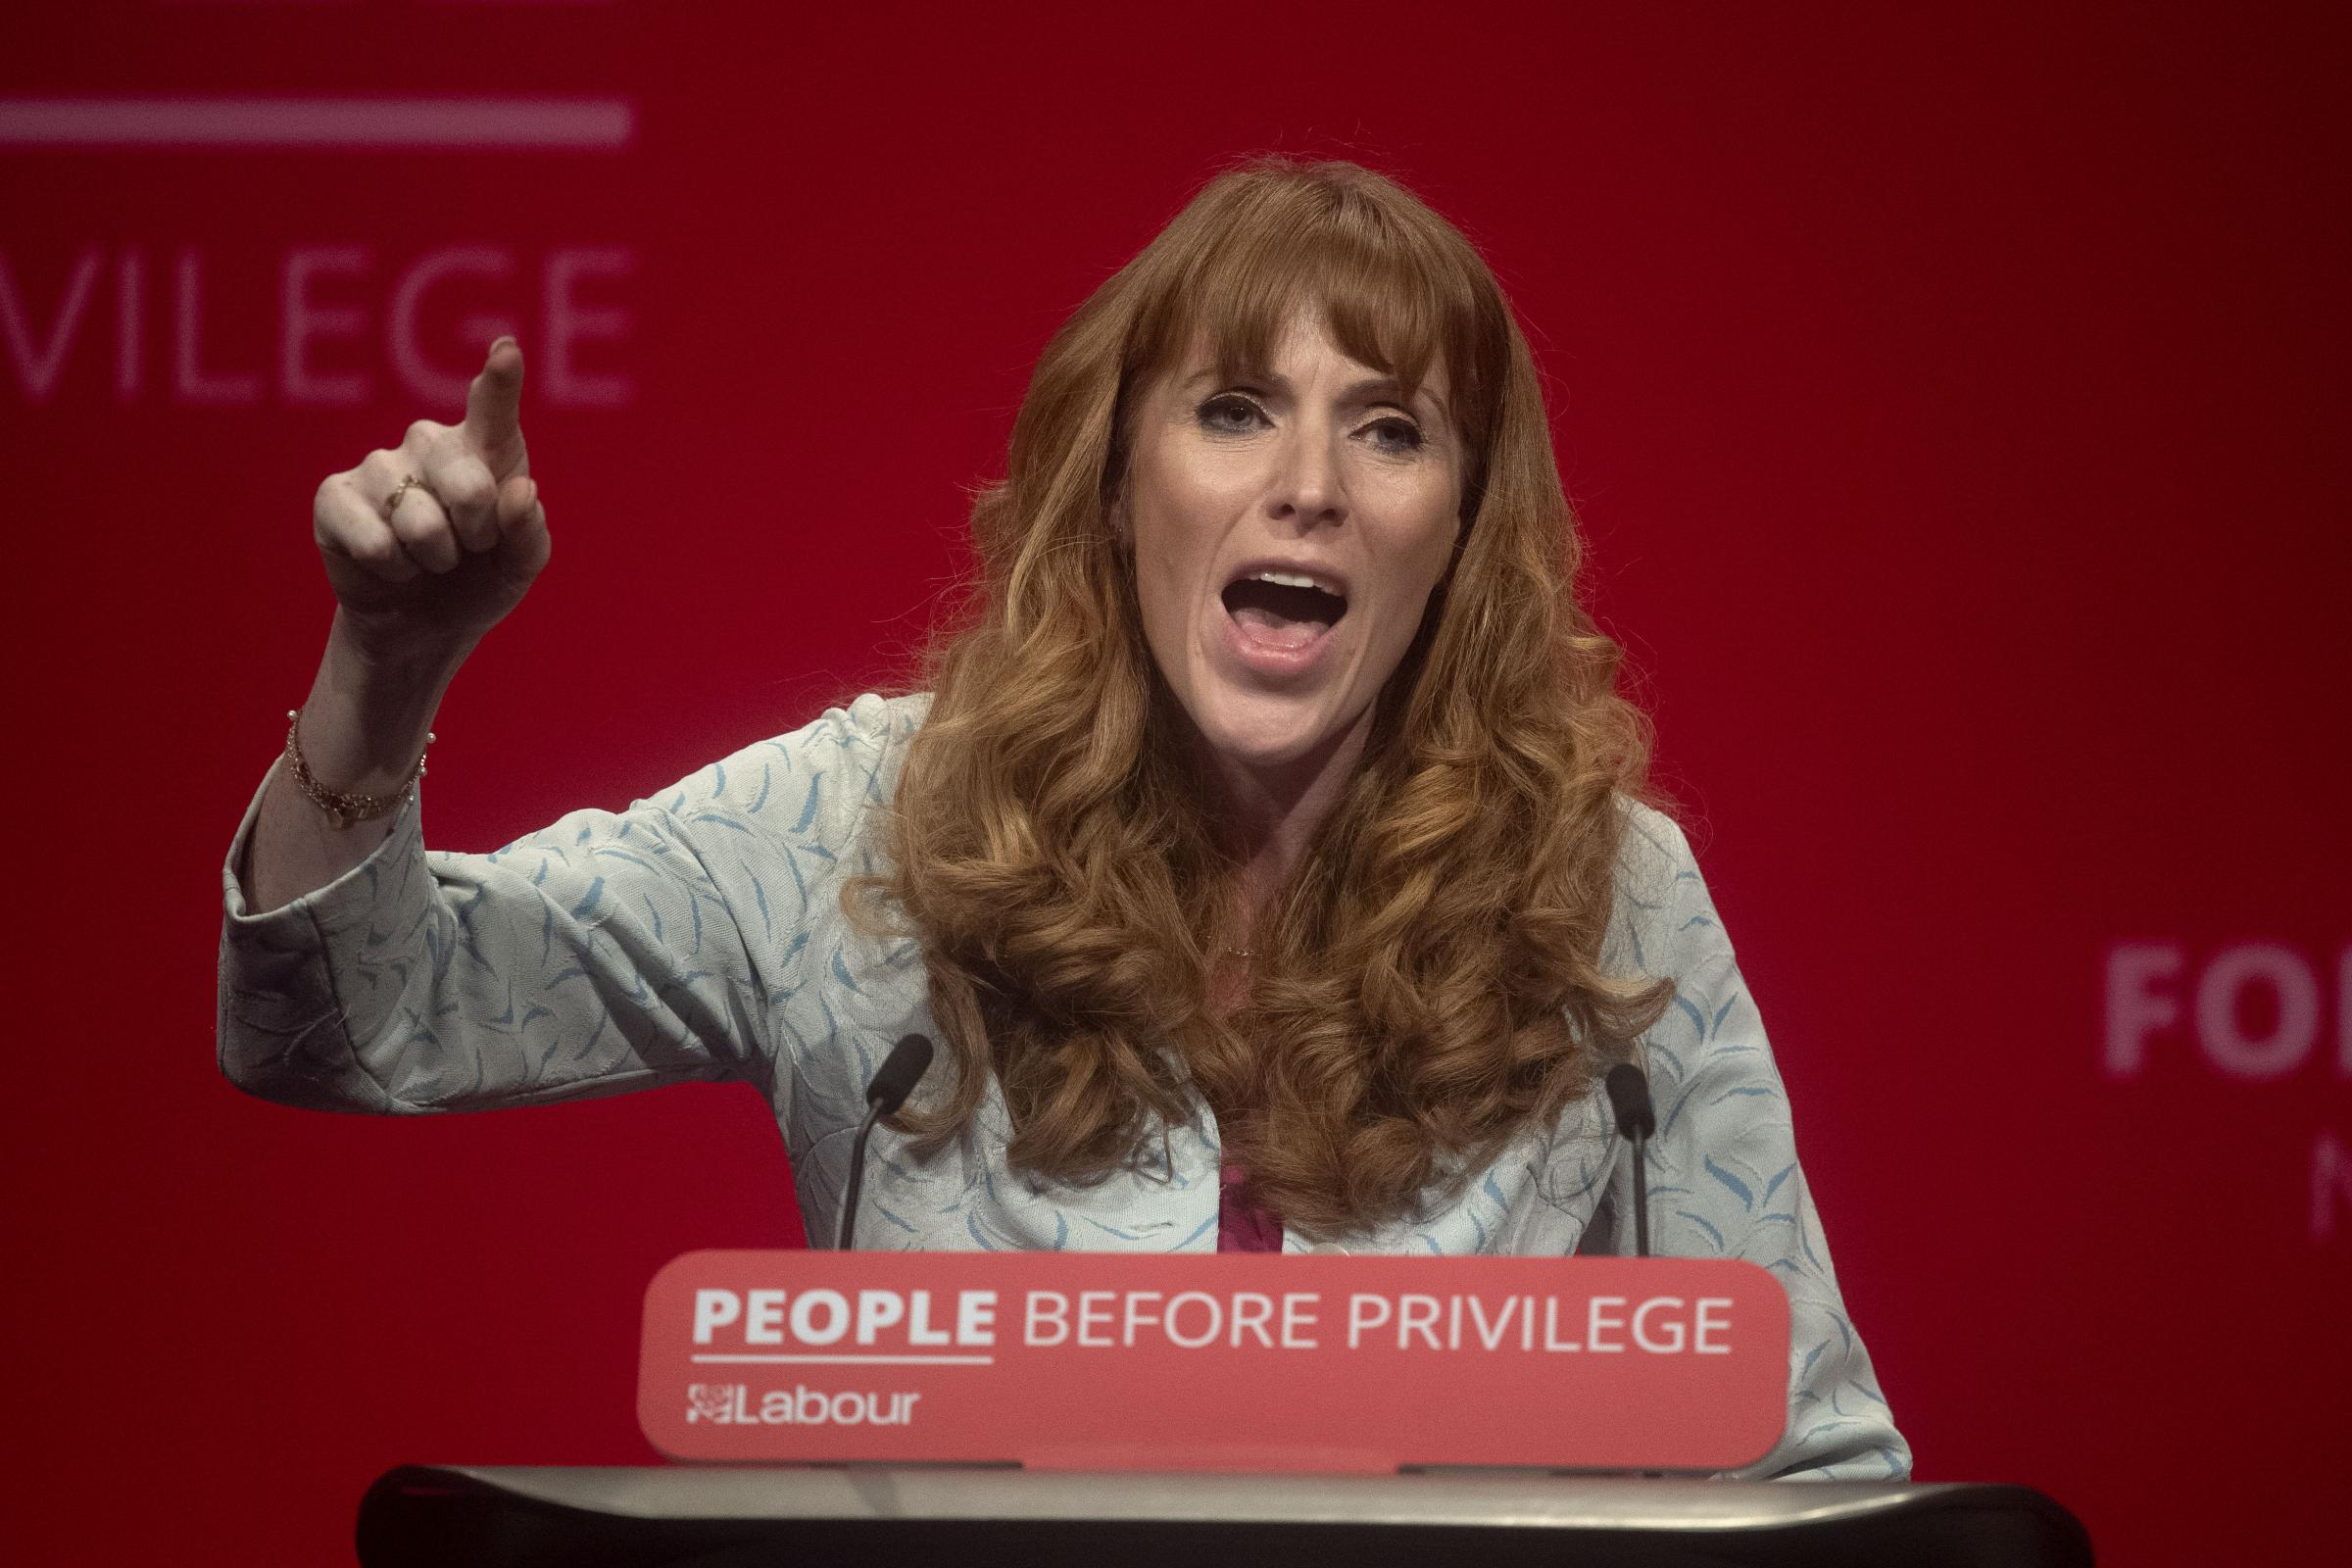 Labour launches new deal for workers to bring back 'pride and dignity' in employment